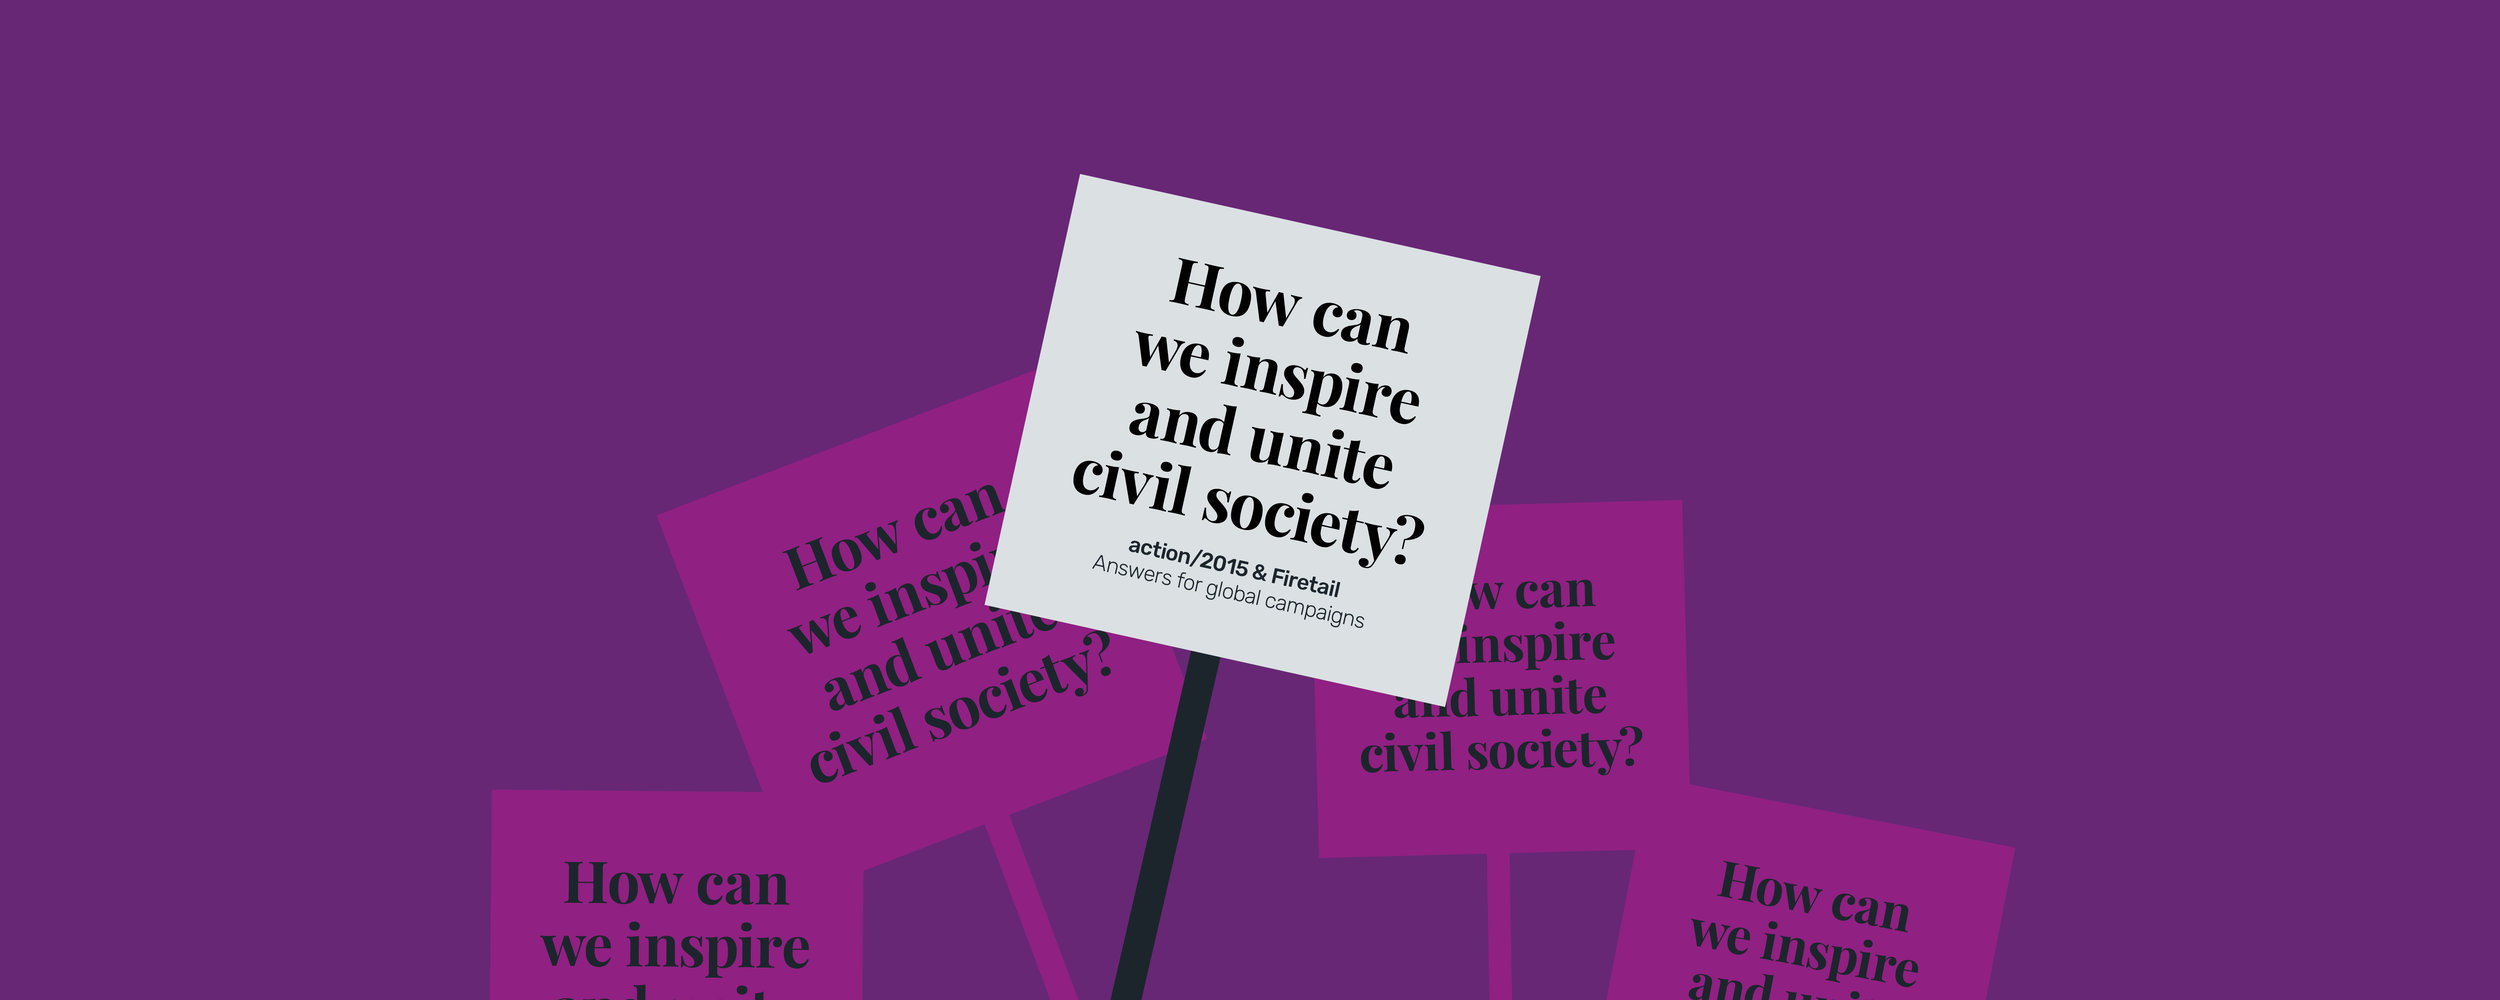 How can we inspire and unite civil society